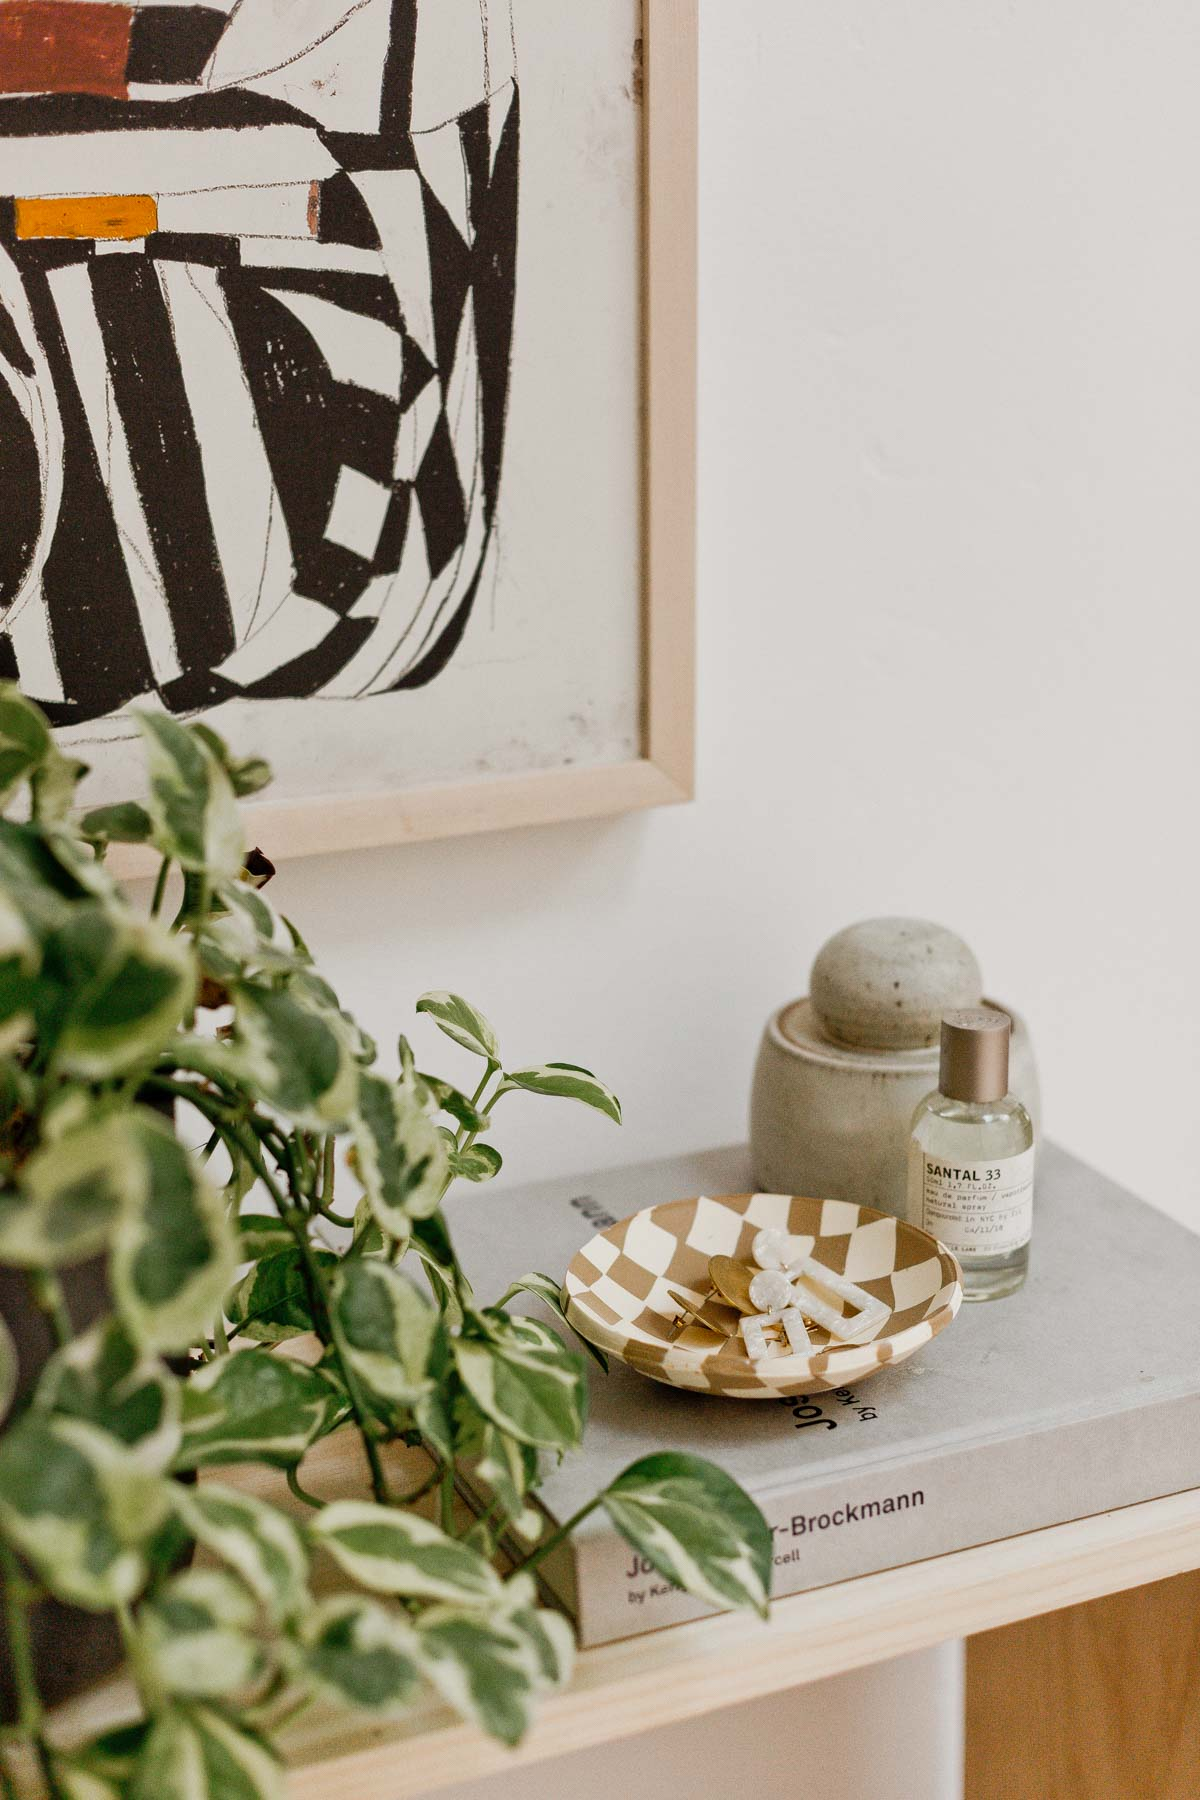 Clay bowl on modern table with plants and abstract artwork.